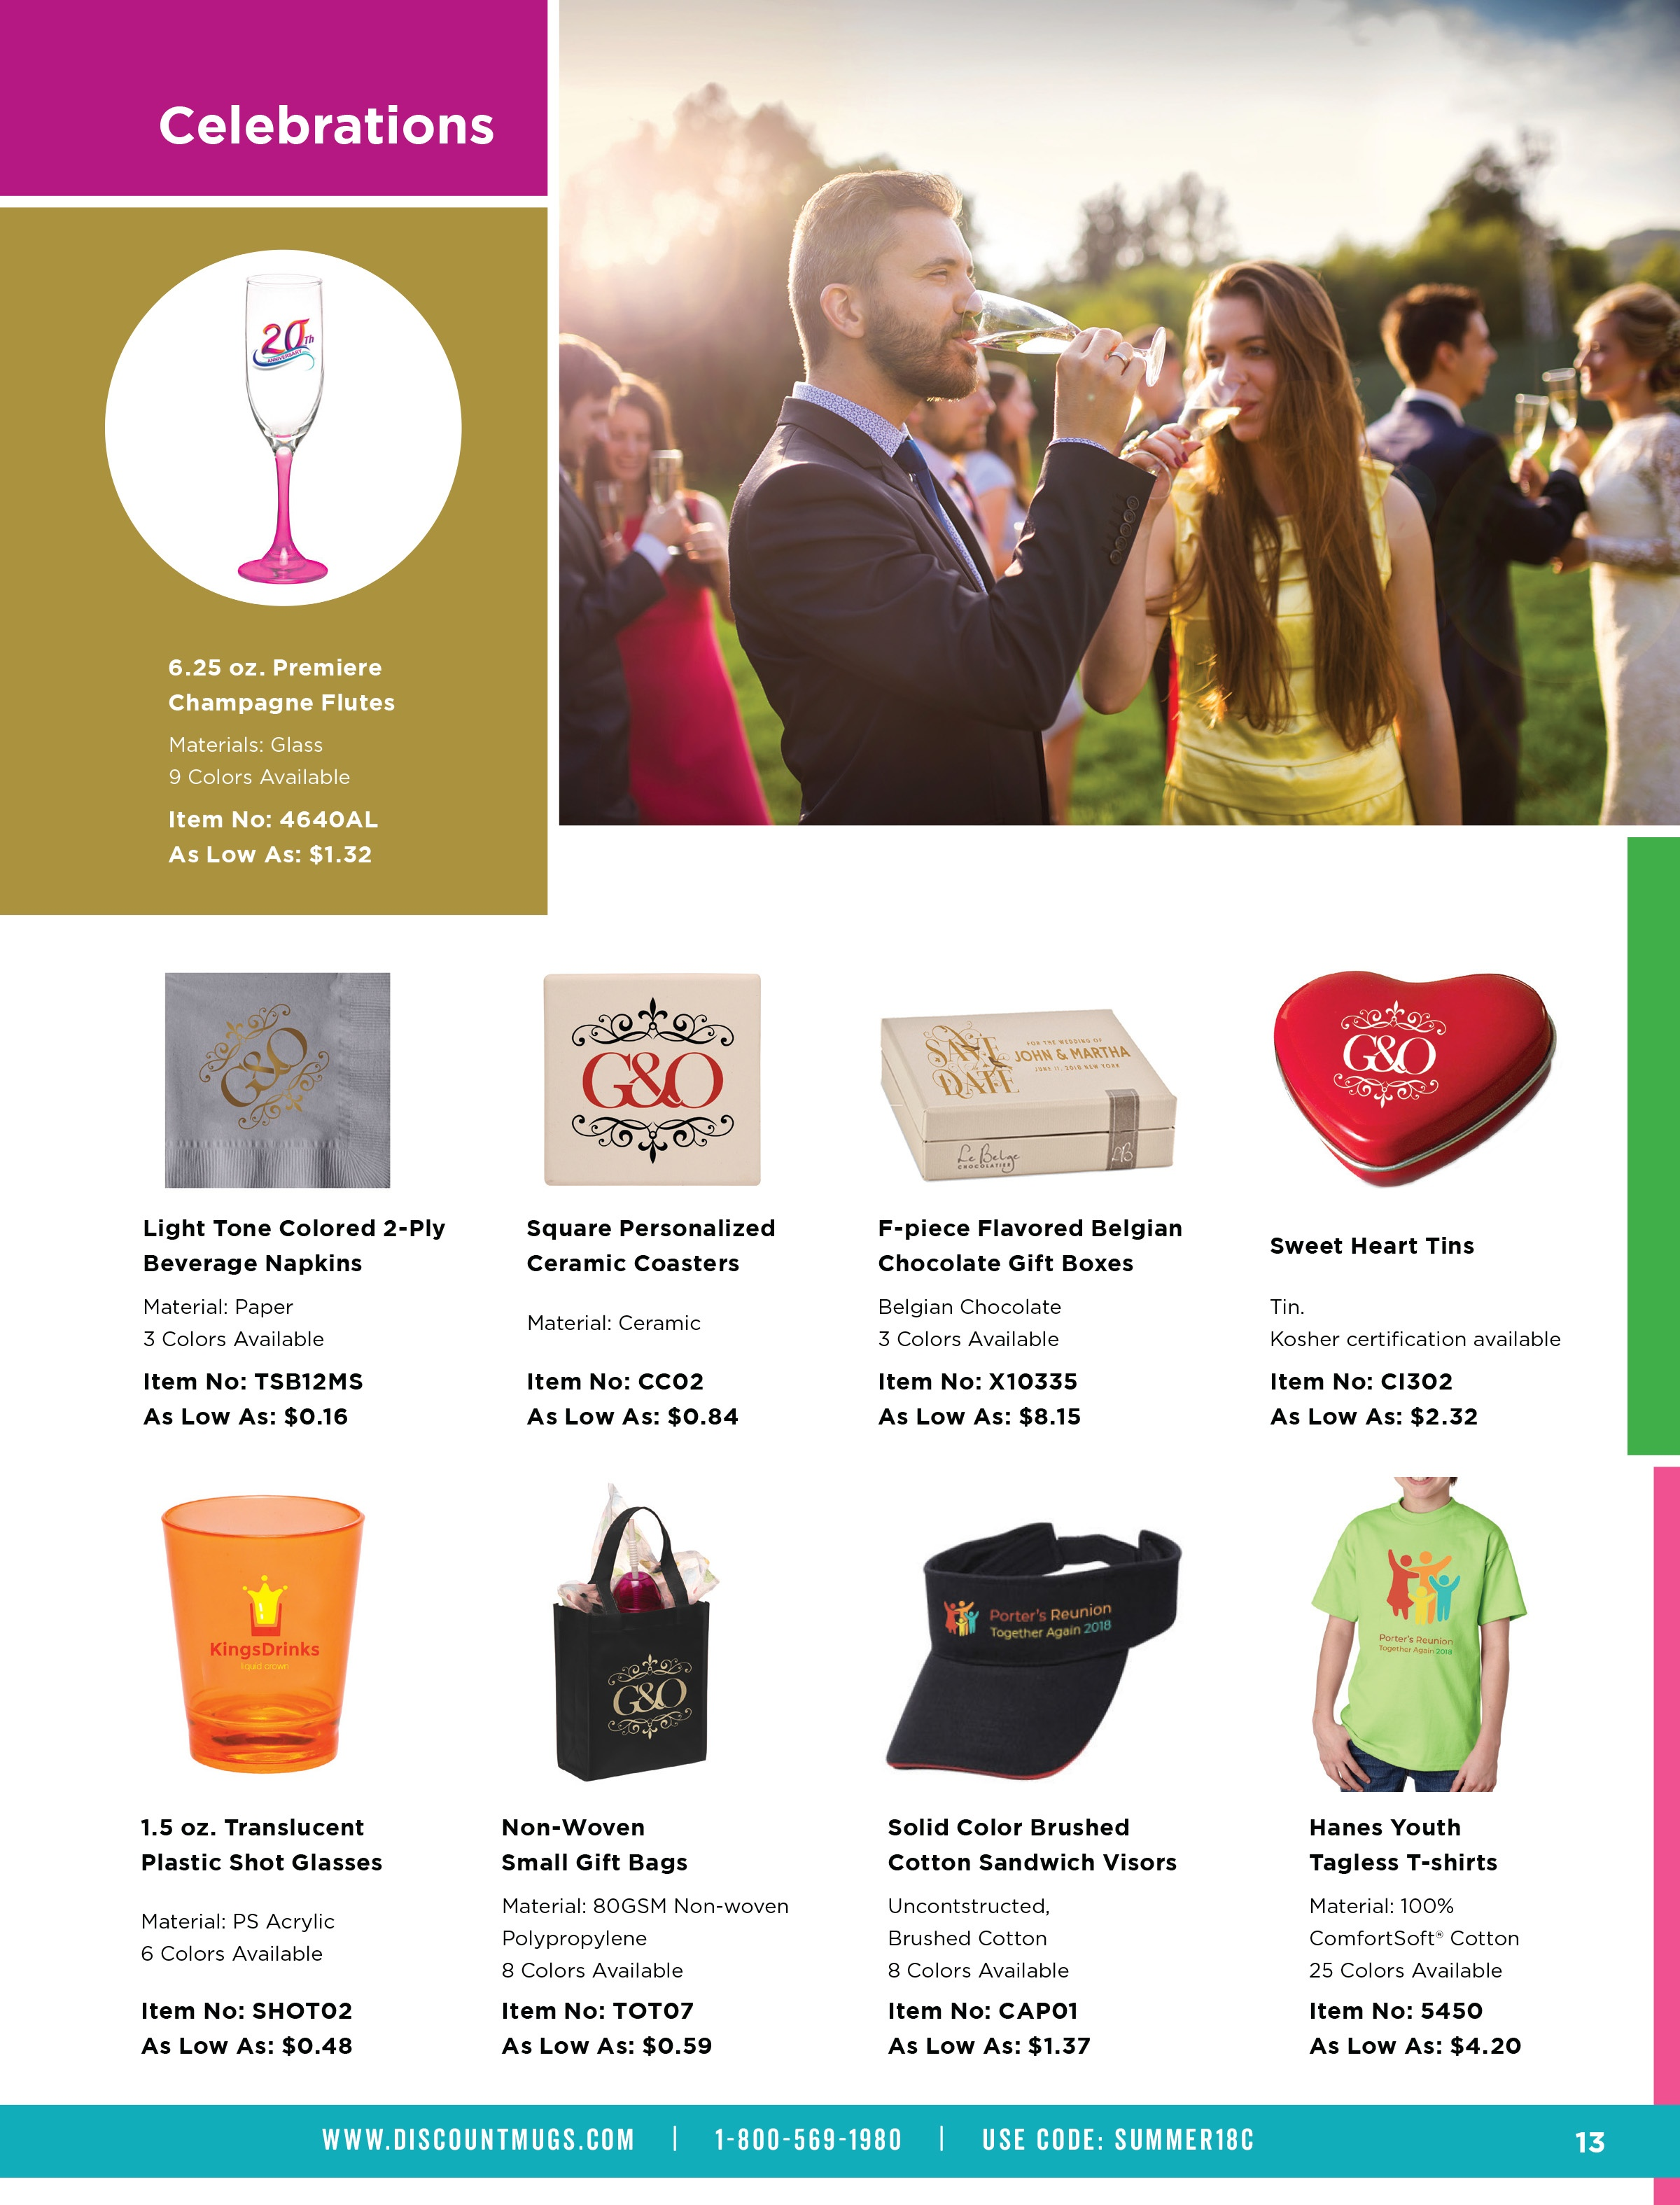 gift ideas for personal events